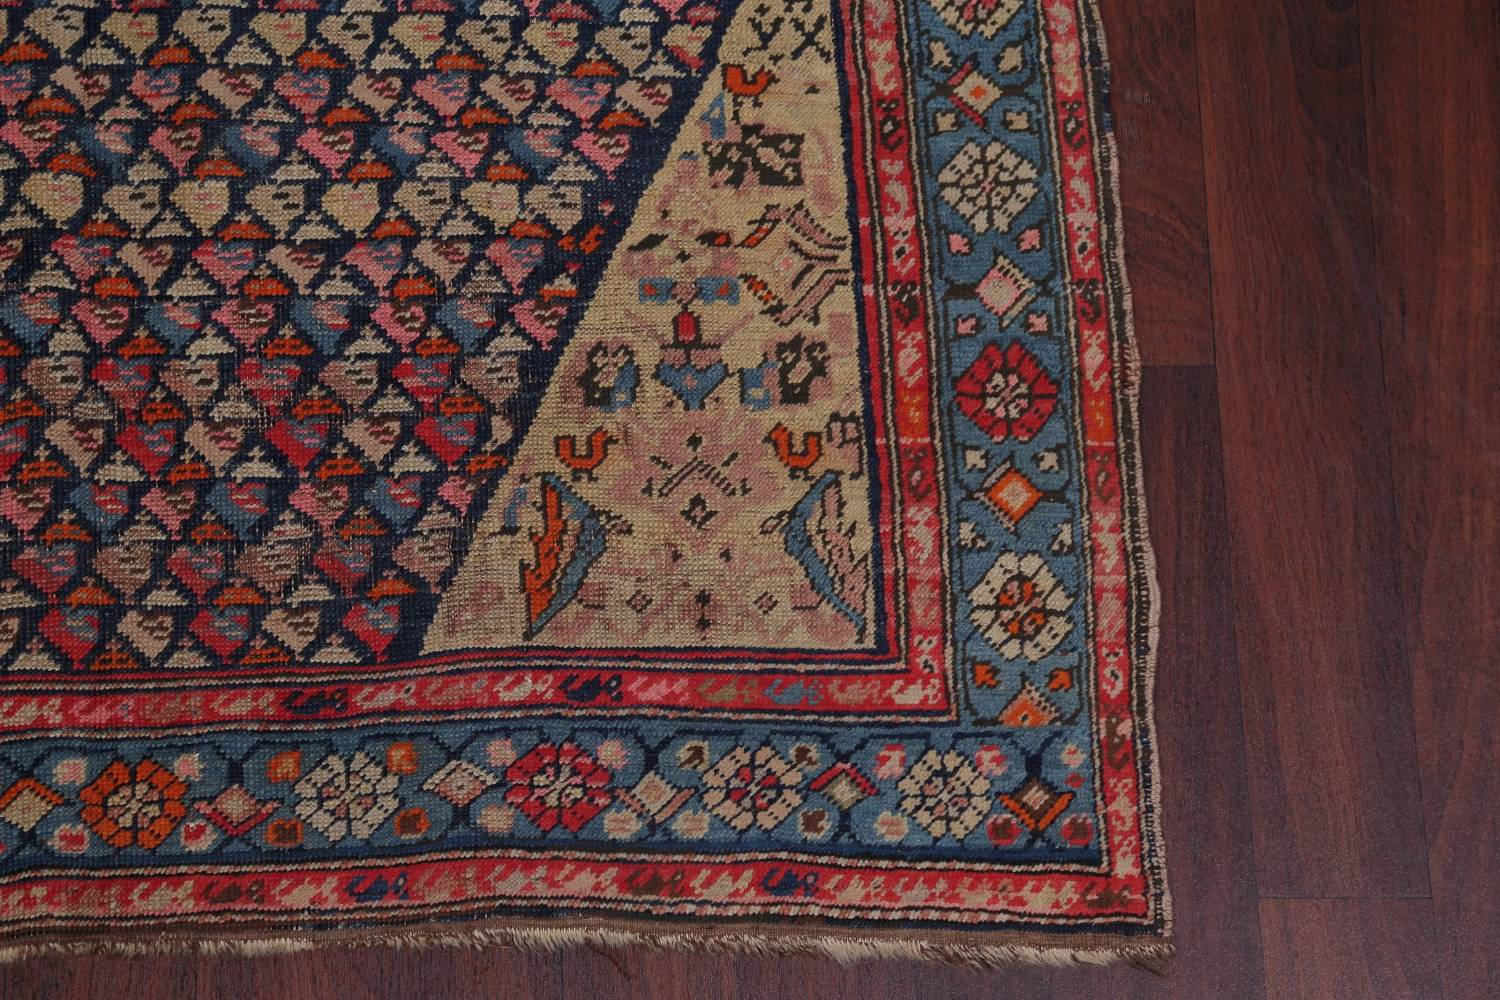 Pre-1900 Karabakh Bote Russian Oriental Hand-Knotted 5x16 Runner Rug image 6